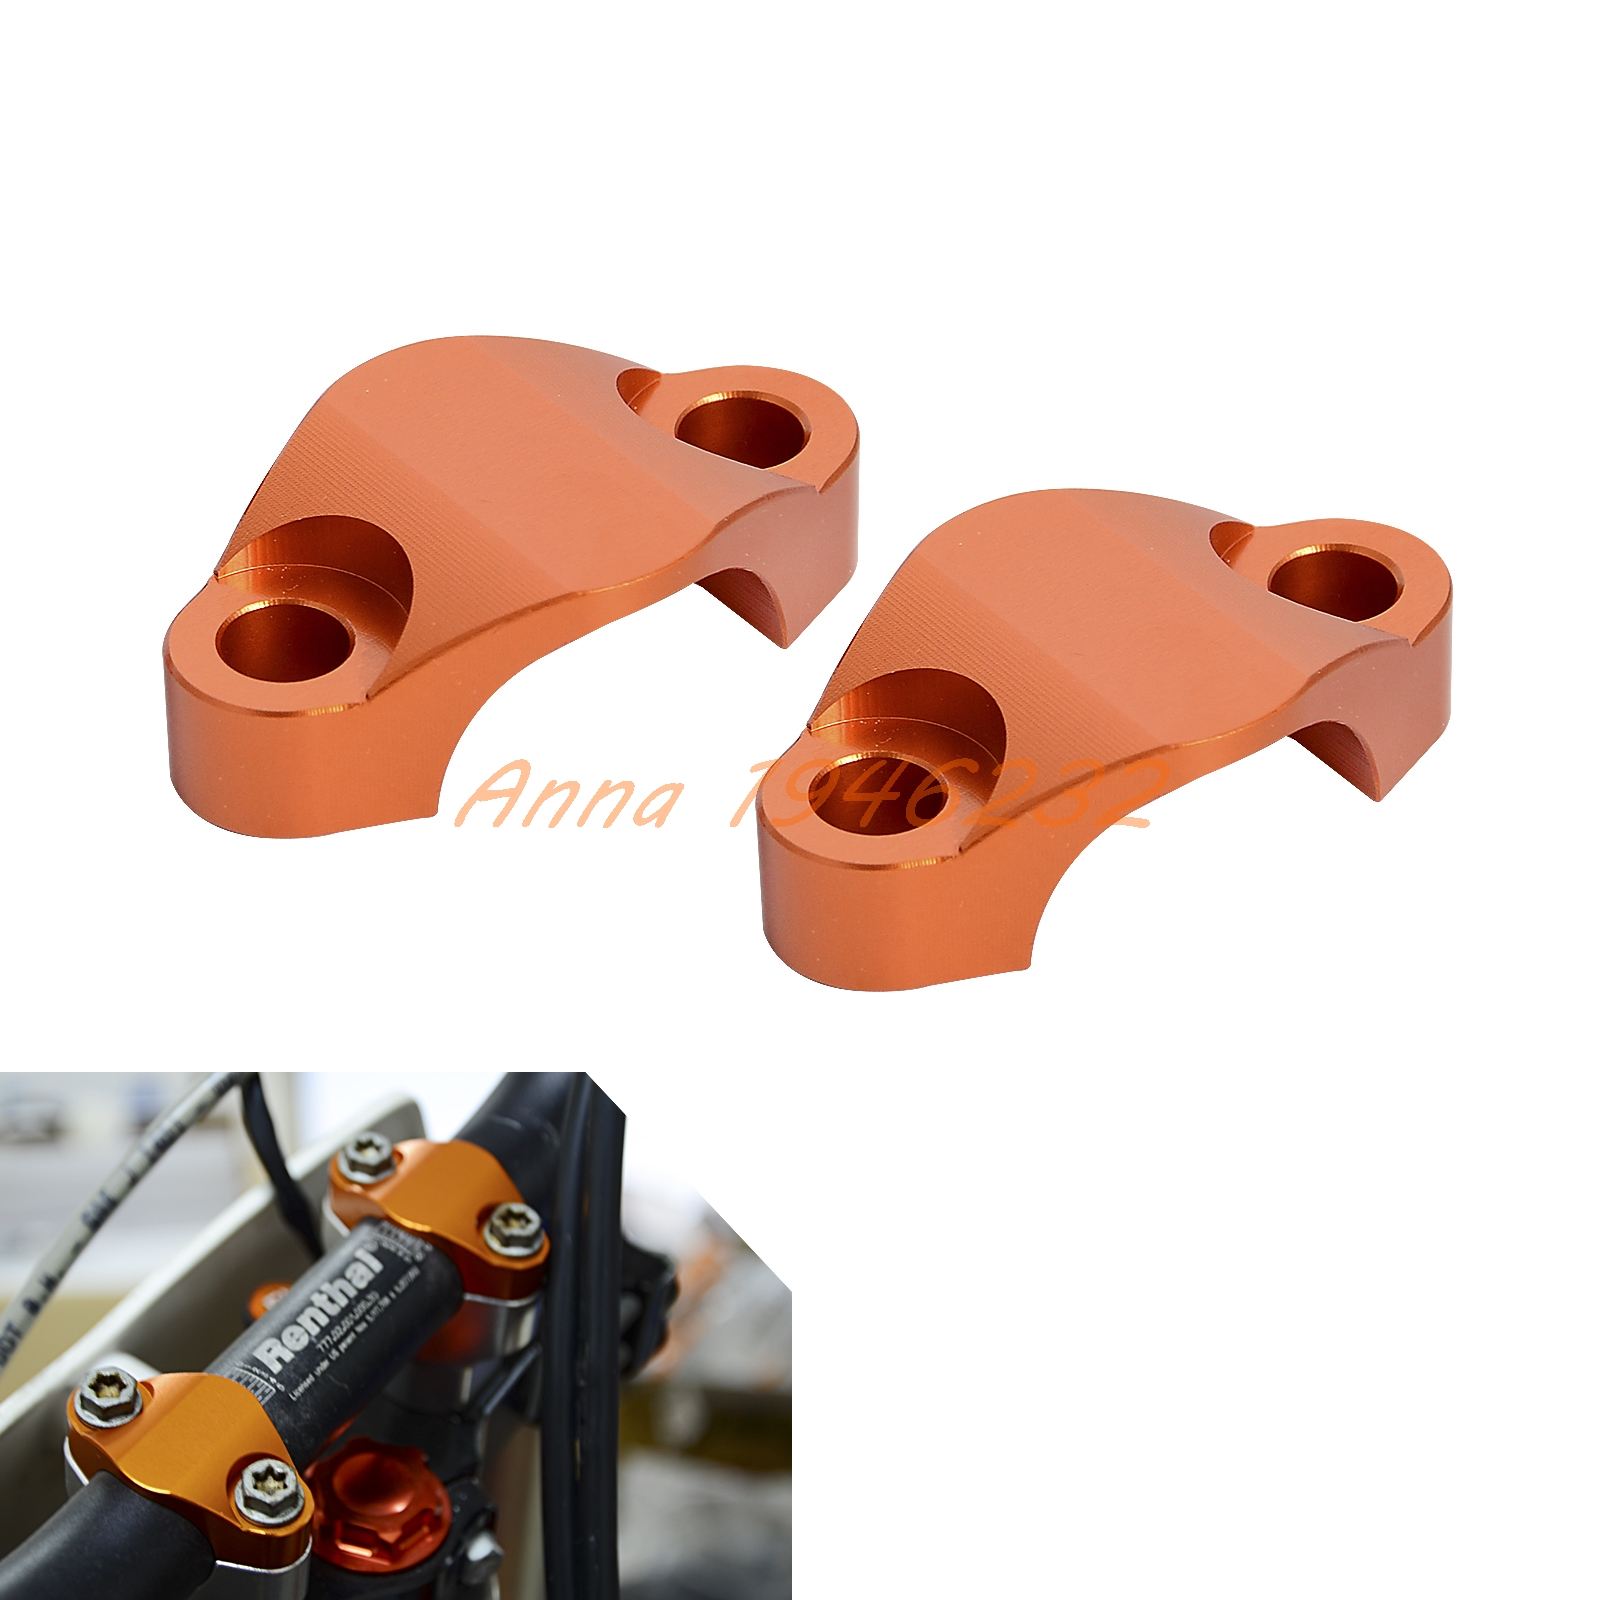 1-1/8 CNC BILLET HANDLEBAR CLAMP 28MM  For KTM 125 150 200 250 350 450 530 SX EXC XC XCW SXF FREERIDE<br><br>Aliexpress